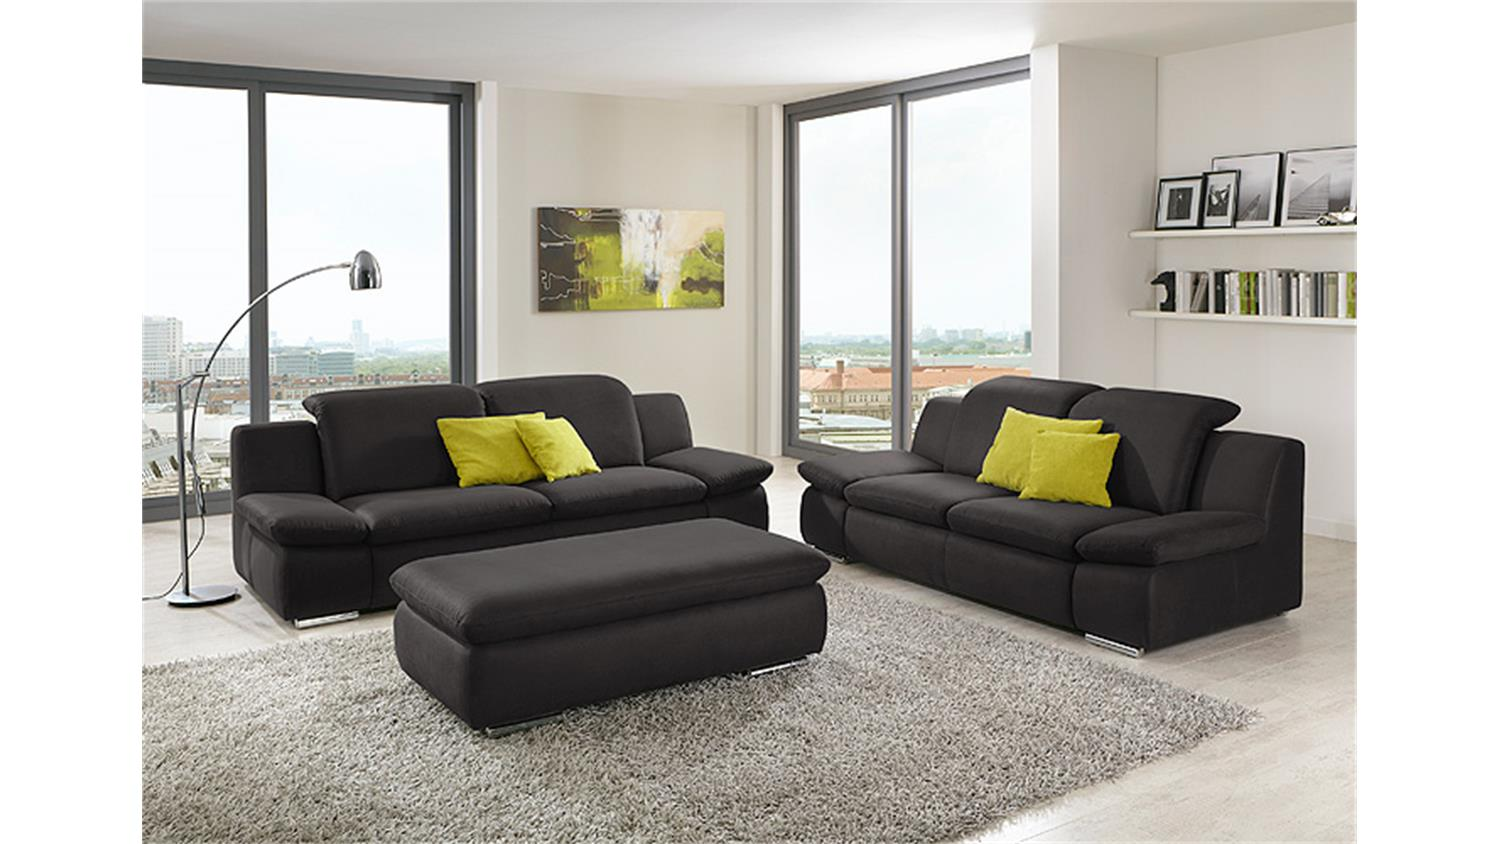 sofagarnitur isona wohnzimmersofa in anthrazit mit funktion. Black Bedroom Furniture Sets. Home Design Ideas